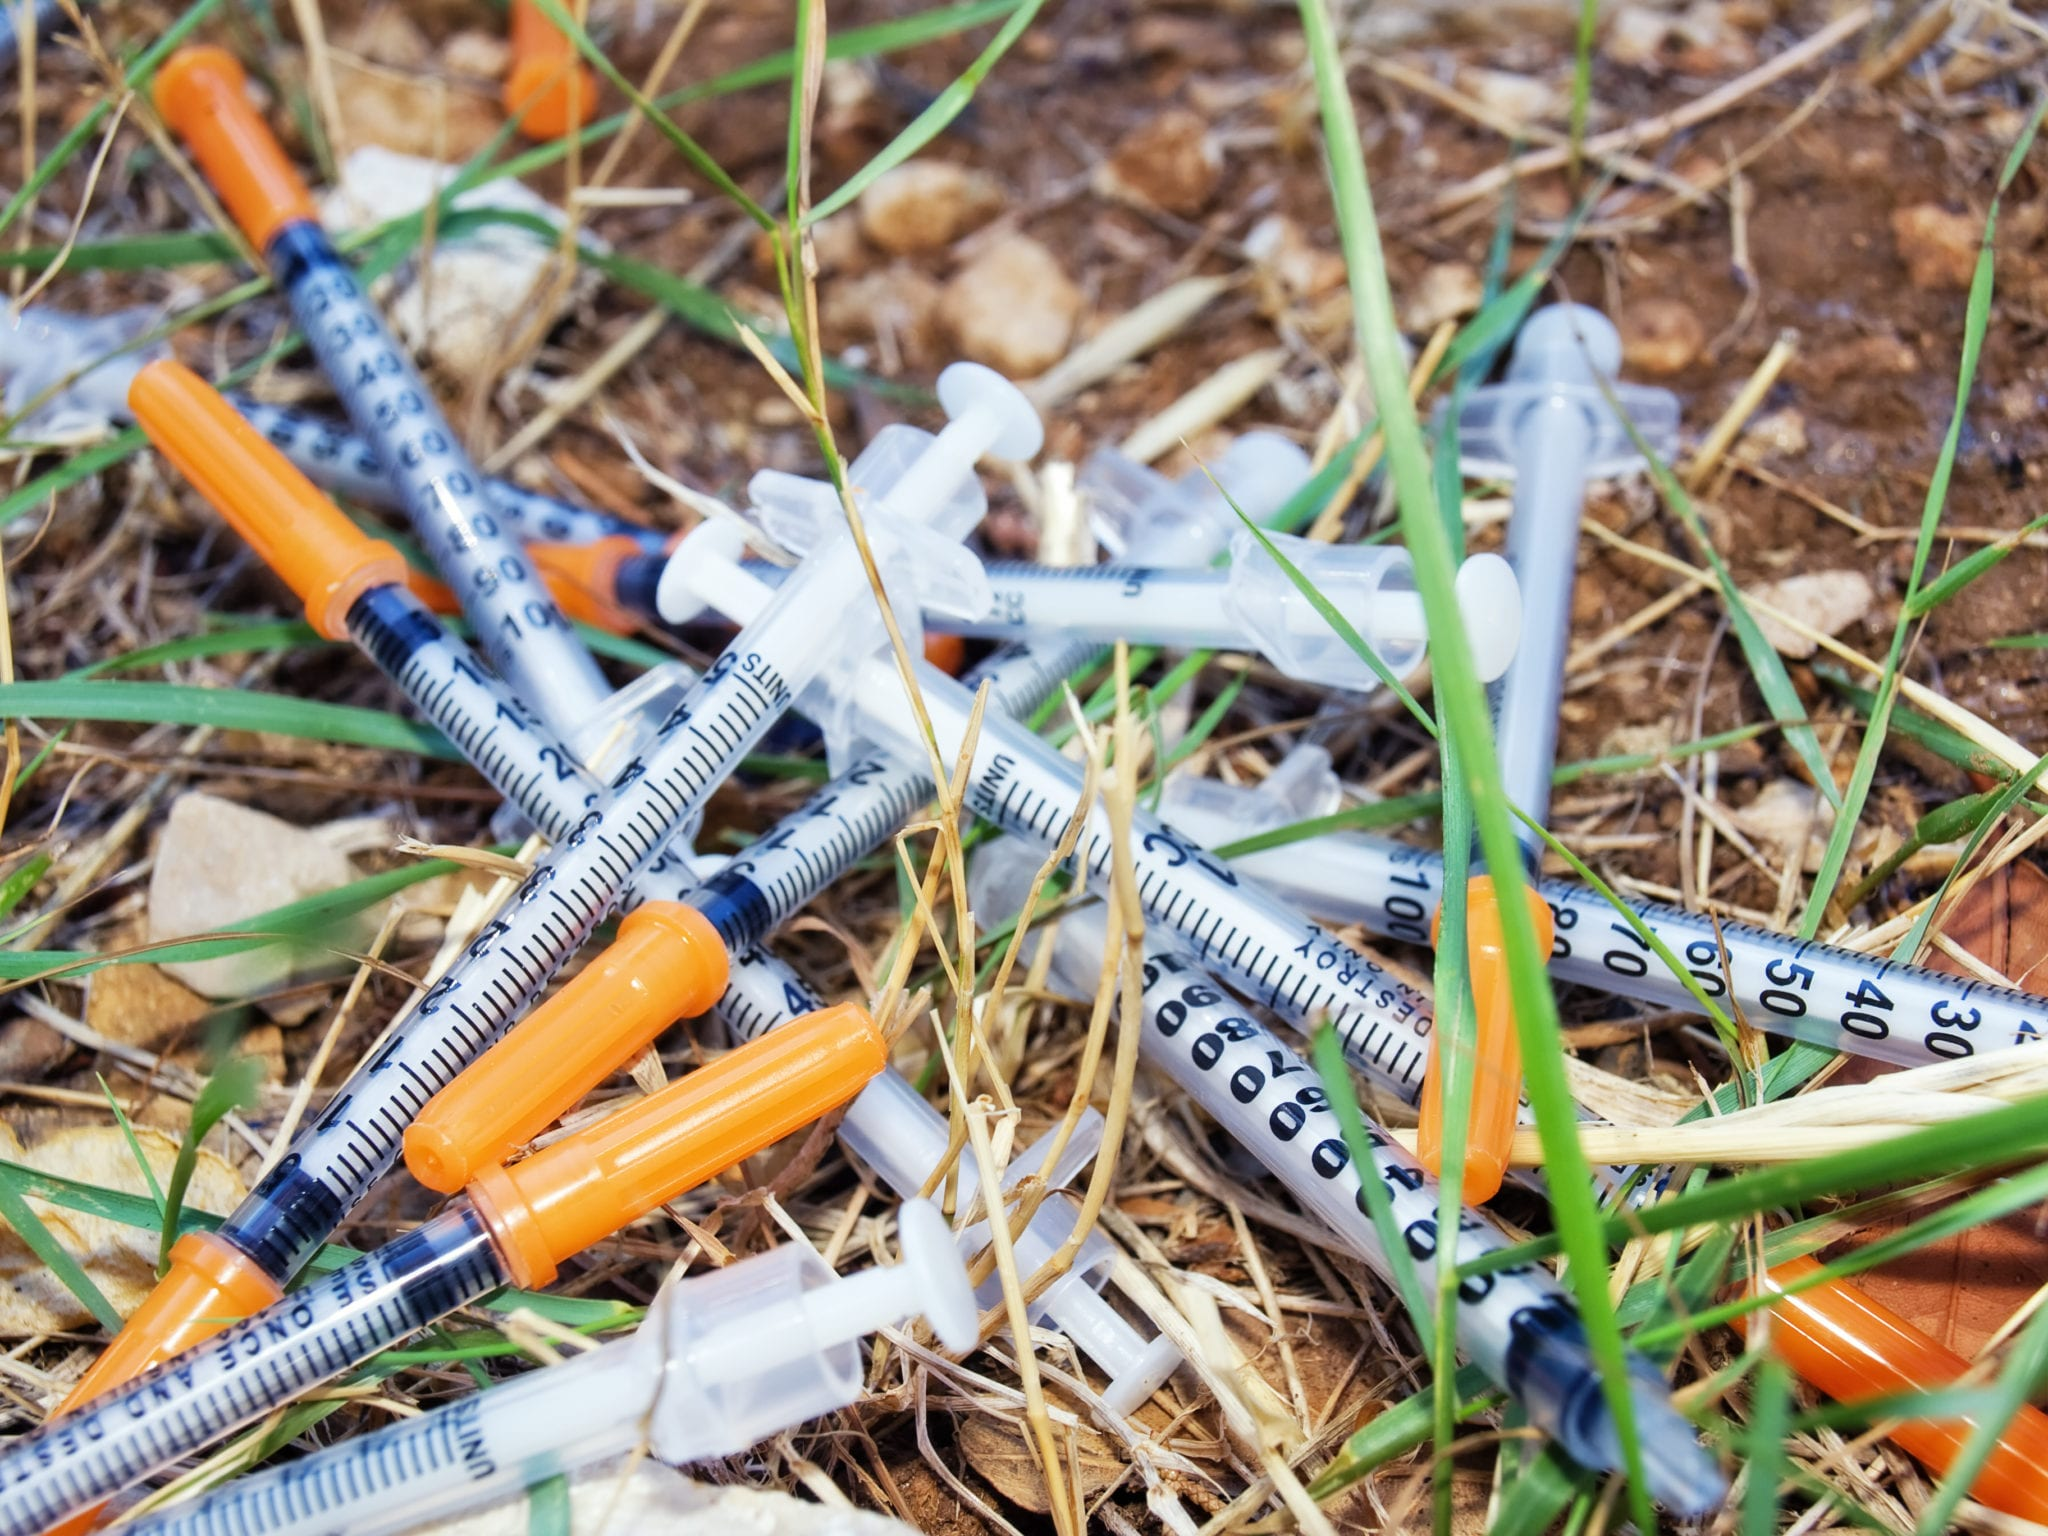 Daily cannabis users 16% more likely to stop injecting drugs: study